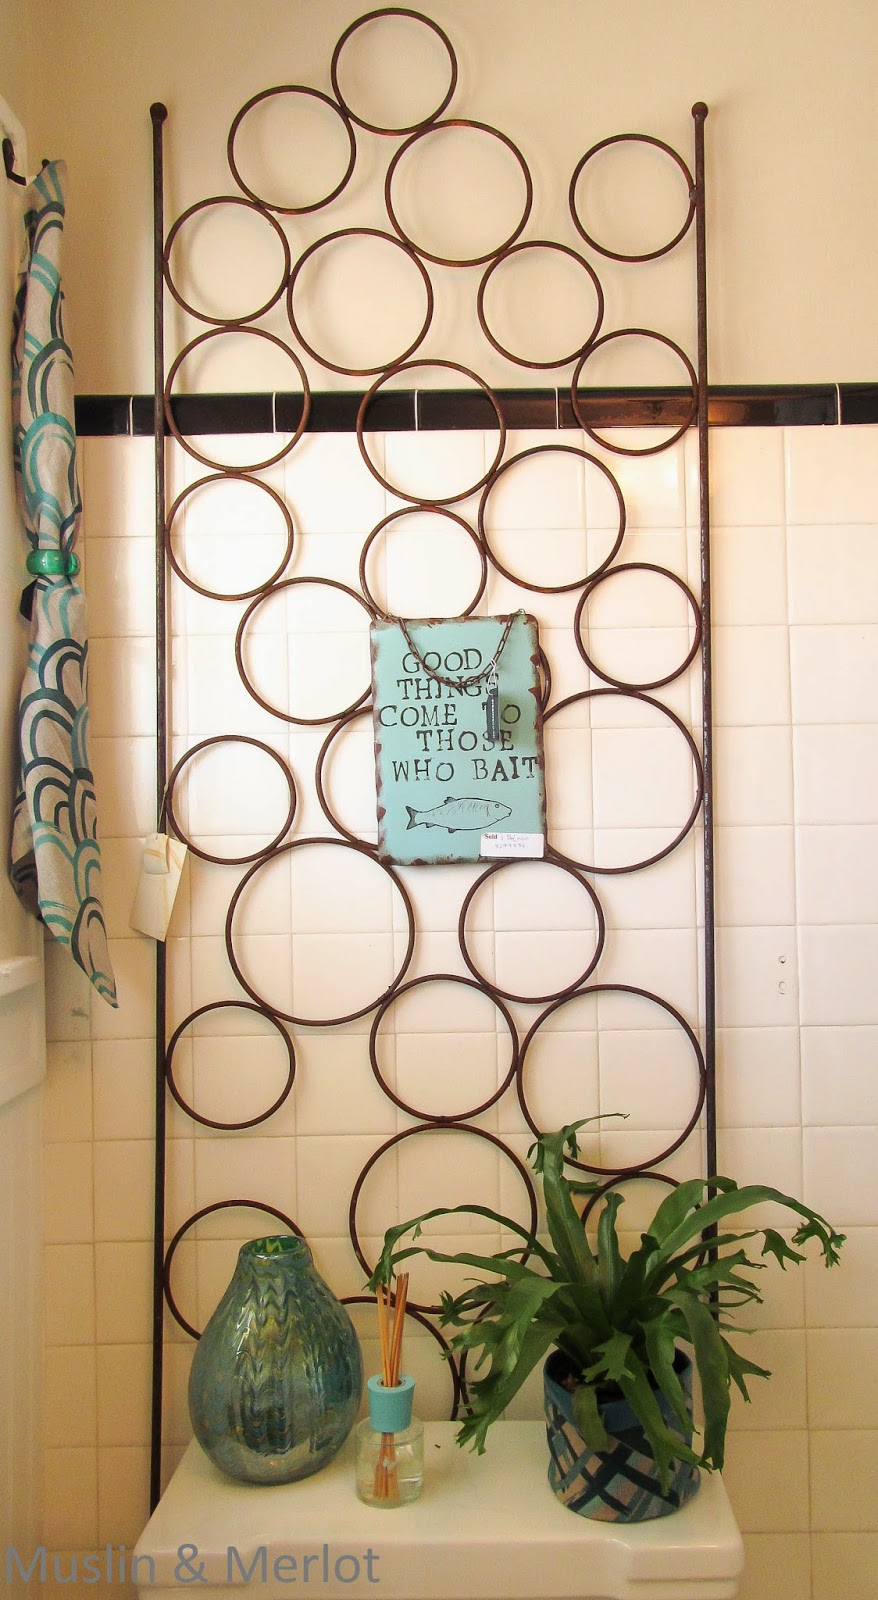 Garden trellis used as wall art. This was my favorite bath decor item.